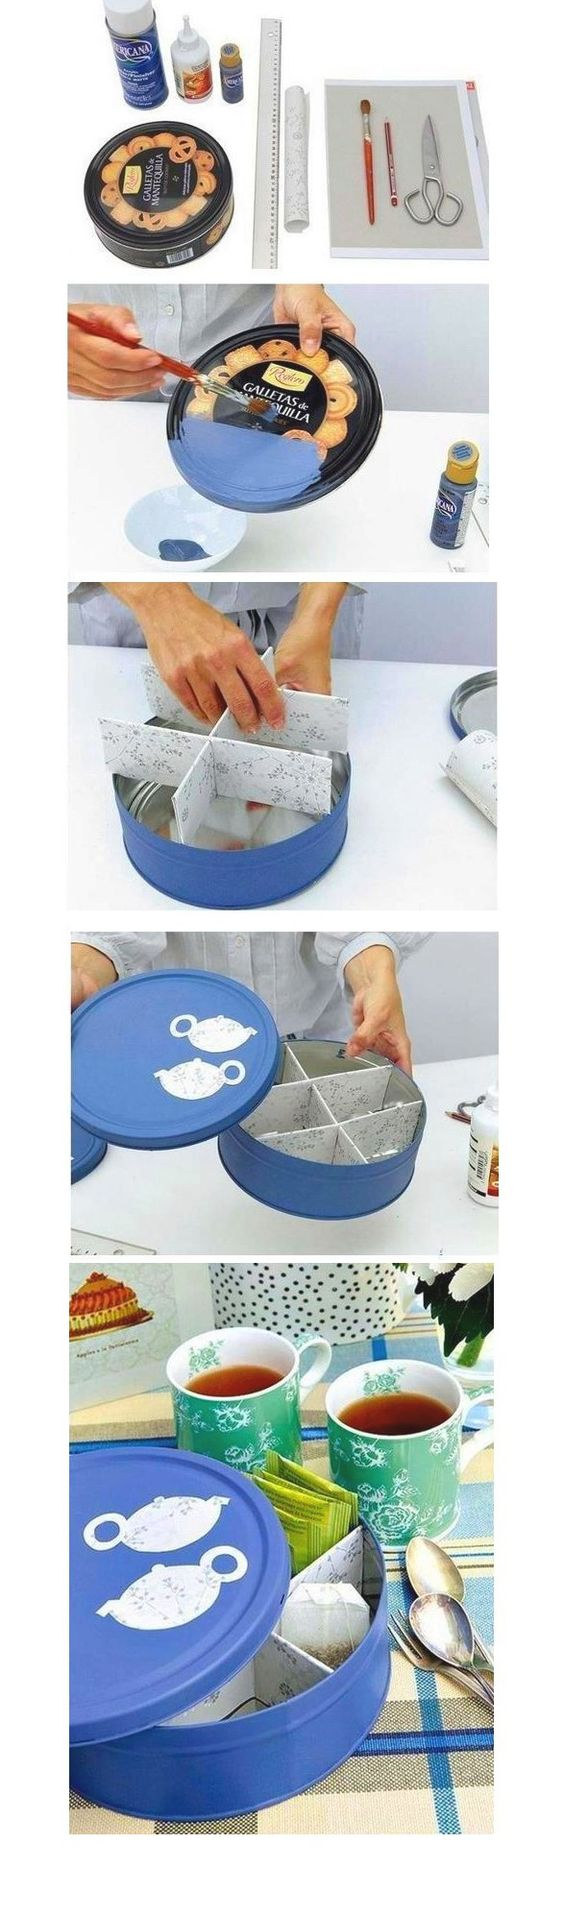 Cookie box diy: